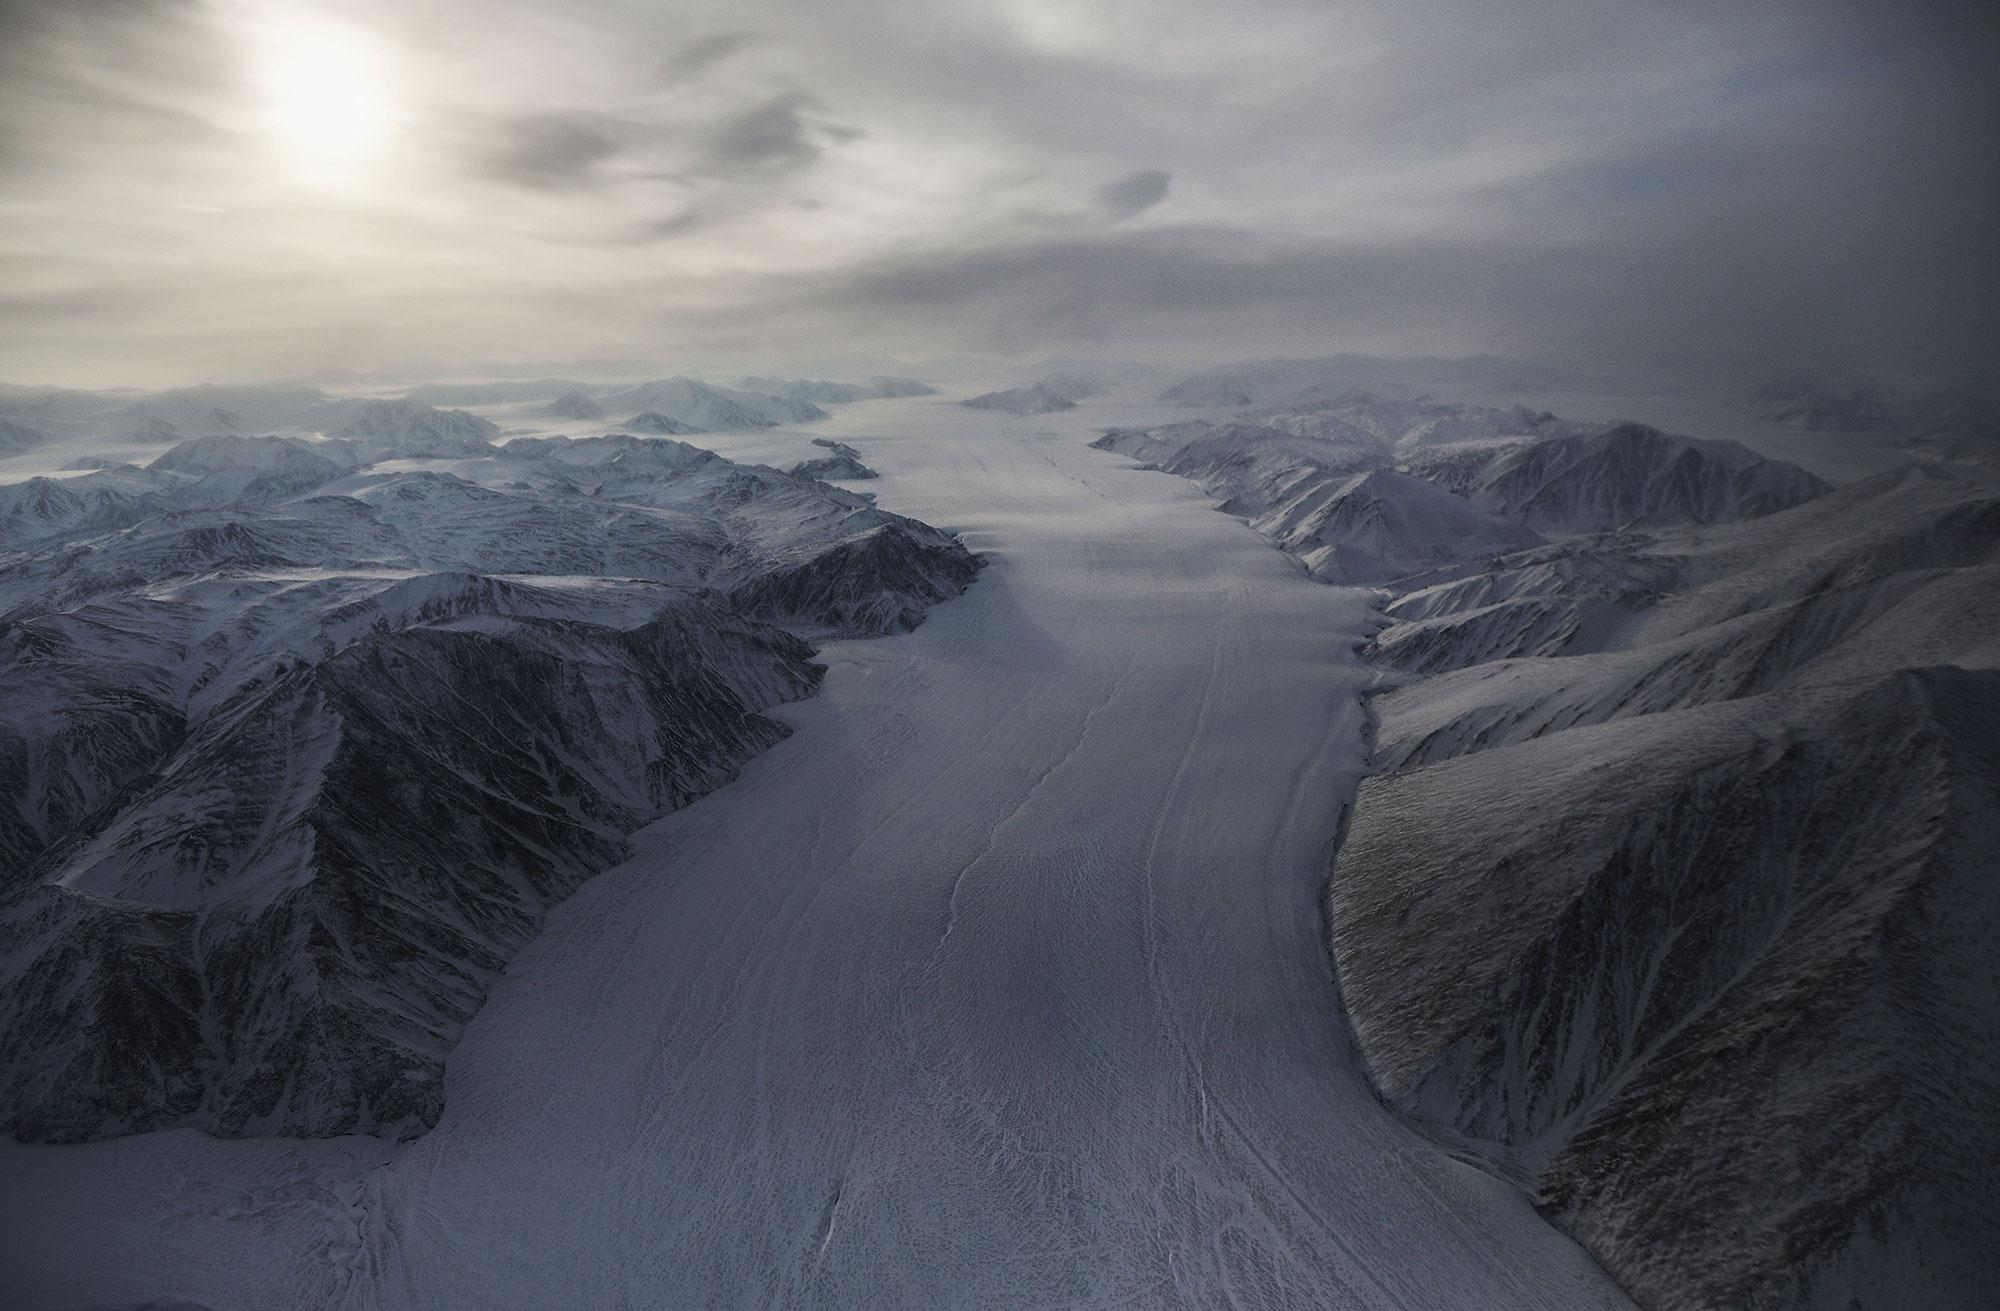 <p>A section of a glacier is seen from NASA's Operation IceBridge research aircraft on March 29, 2017 above Ellesmere Island, Canada. The ice fields of Ellesmere Island are retreating due to warming temperatures. NASA's Operation IceBridge has been studying how polar ice has evolved over the past nine years and is currently flying a set of eight-hour research flights over ice sheets and the Arctic Ocean to monitor Arctic ice loss aboard a retrofitted 1966 Lockheed P-3 aircraft. According to NASA scientists and the National Snow and Ice Data Center (NSIDC), sea ice in the Arctic appears to have reached its lowest maximum wintertime extent ever recorded on March 7.Scientists have said the Arctic has been one of the regions hardest hit by climate change. (Mario Tama/Getty Images) </p>